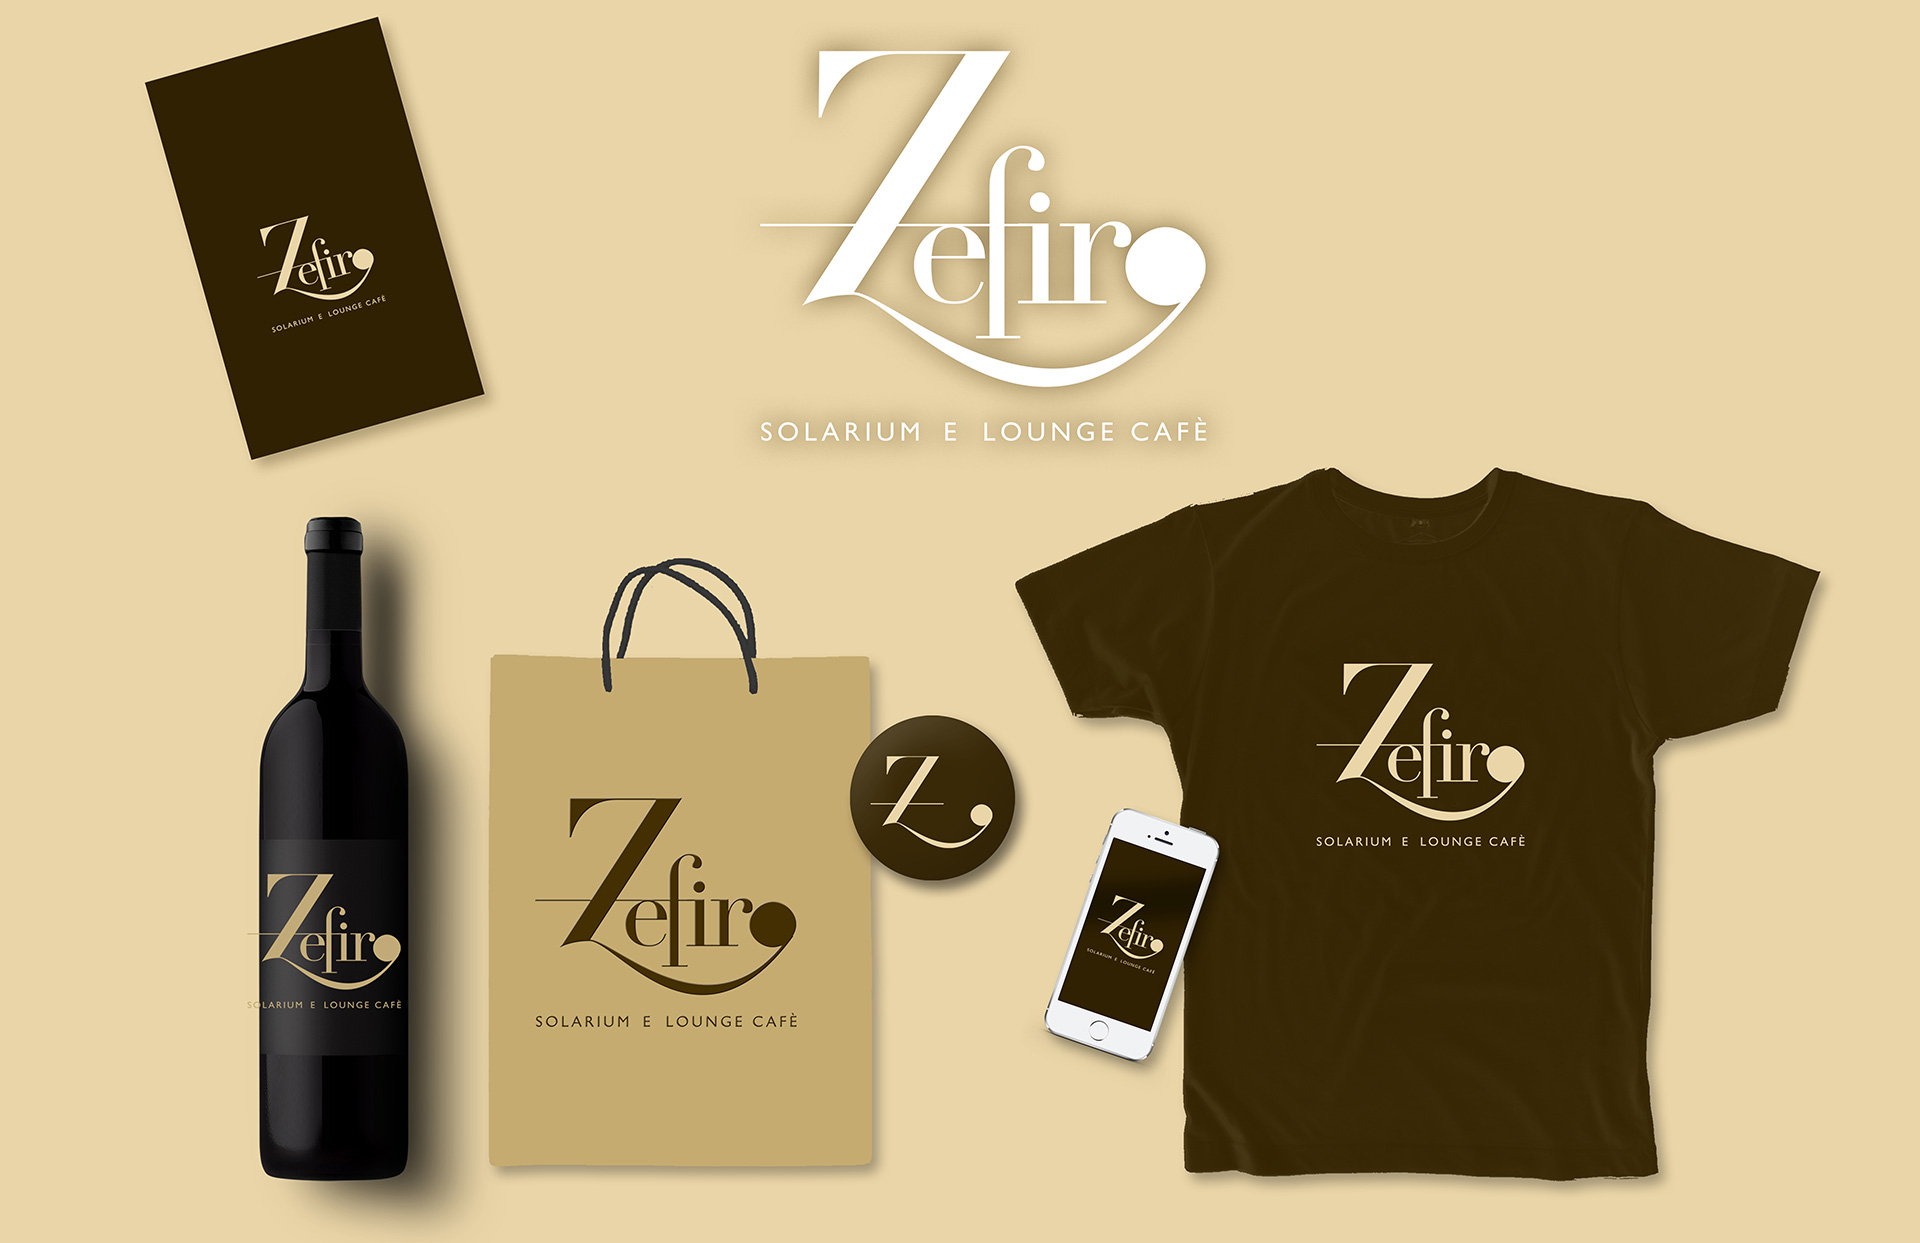 zefiro-graphic